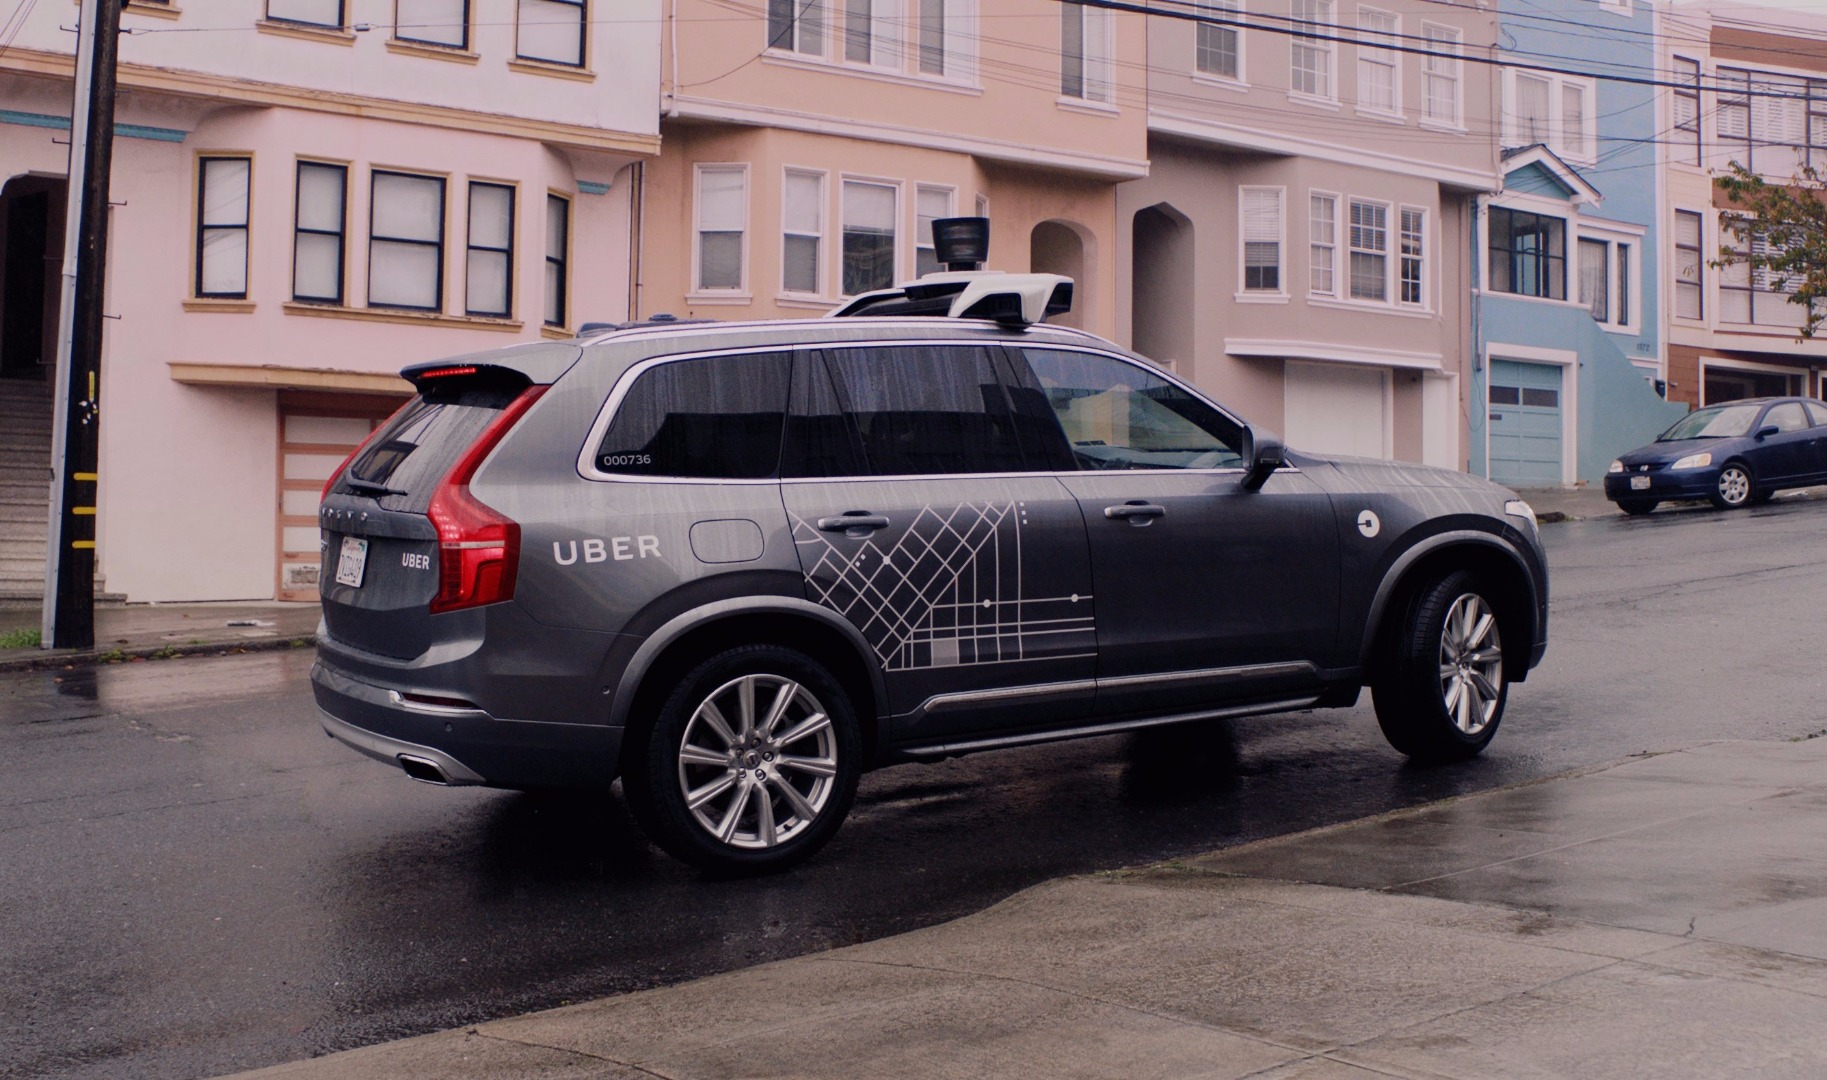 News Uber Ordered To Cease Use Self Driving Cars In San